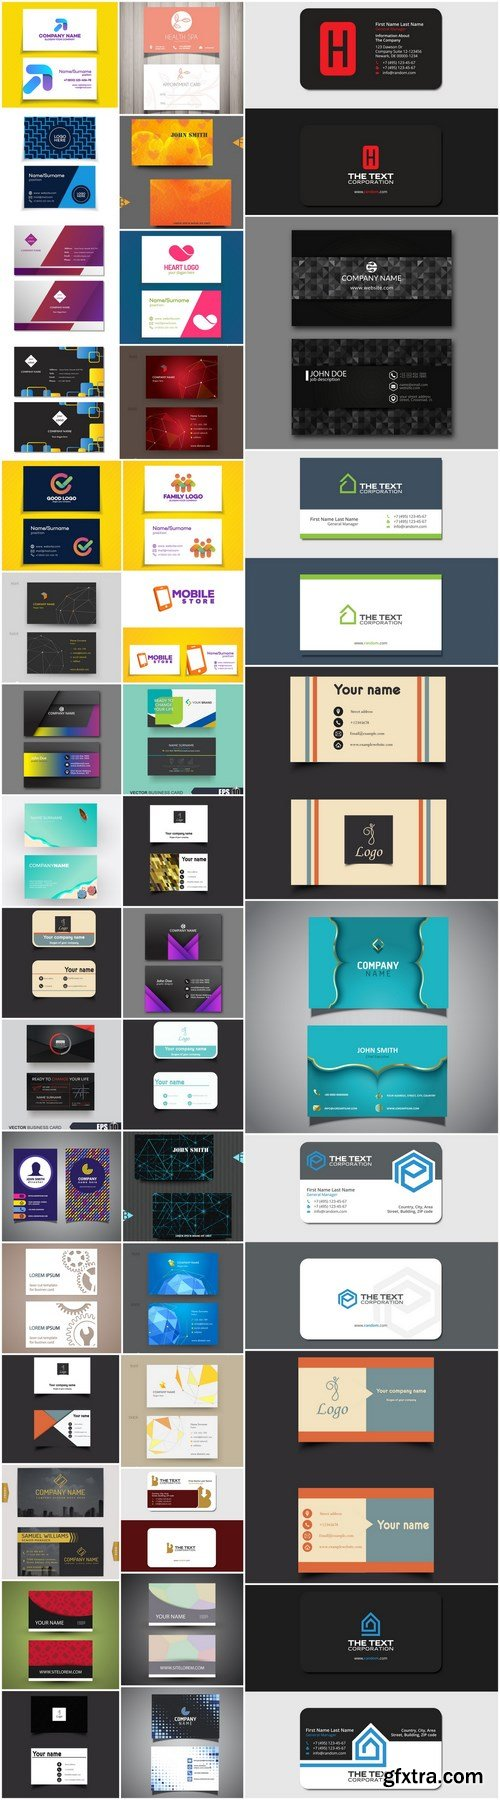 Business Card Template - 40 Vector